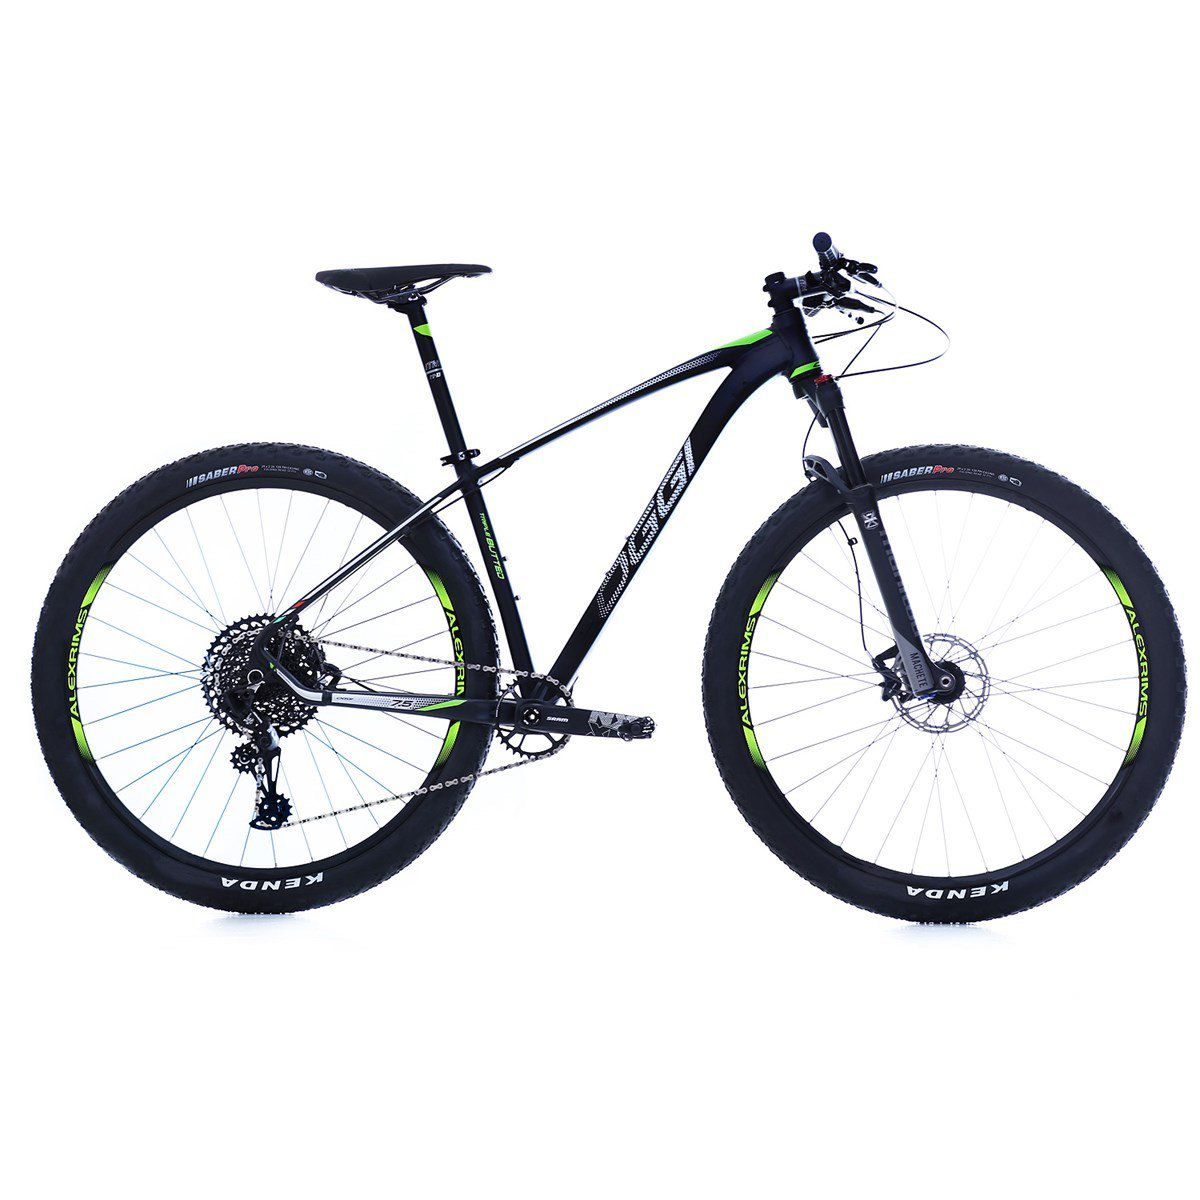 BICICLETA 29 OGGI BIG WHEEL 7.5 NX Eagle 12V 2020 PTO/VERD/GRAFT